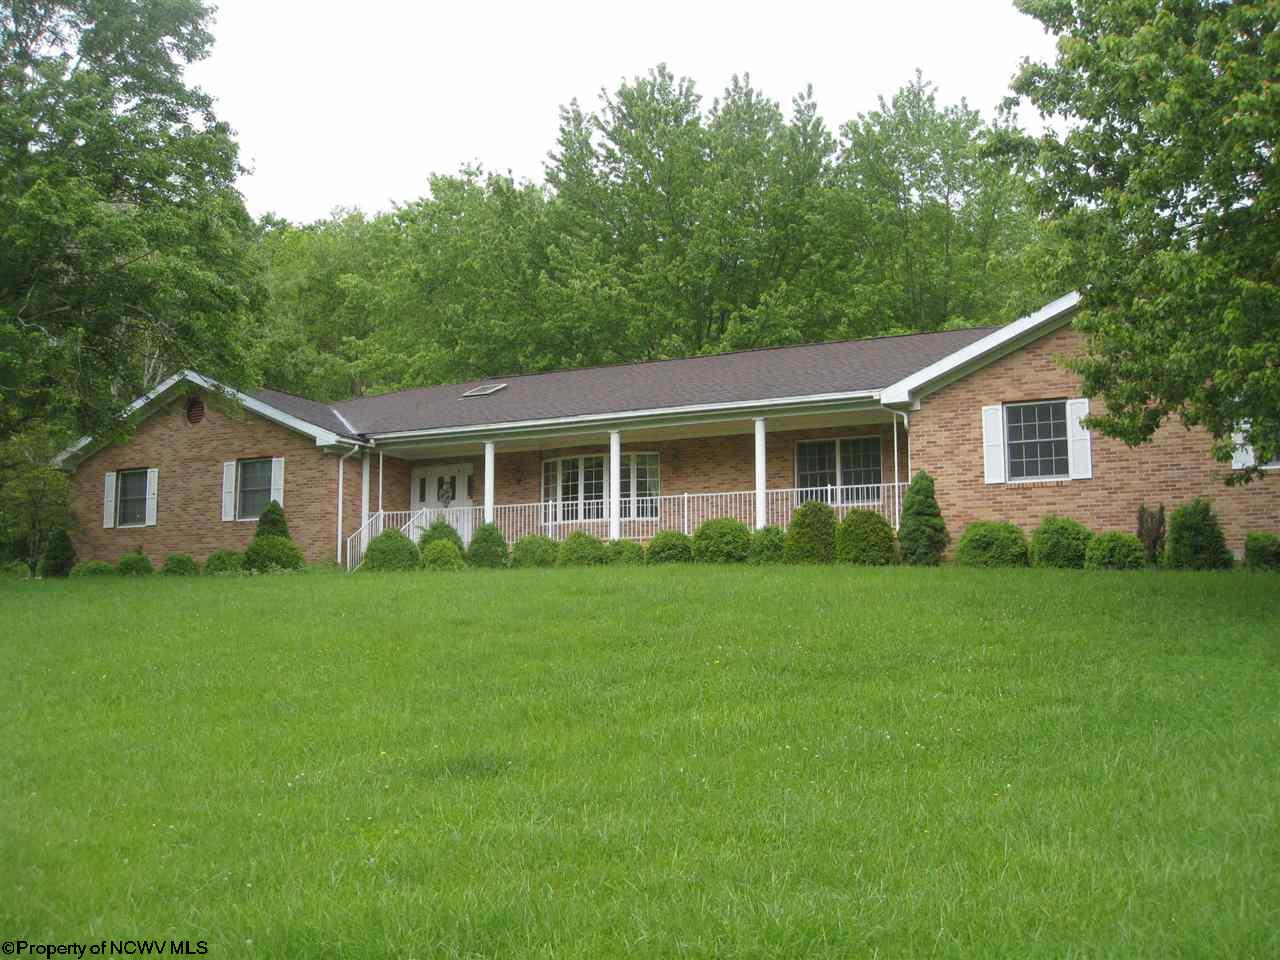 North Central West Virginia Real Estate Mountain State